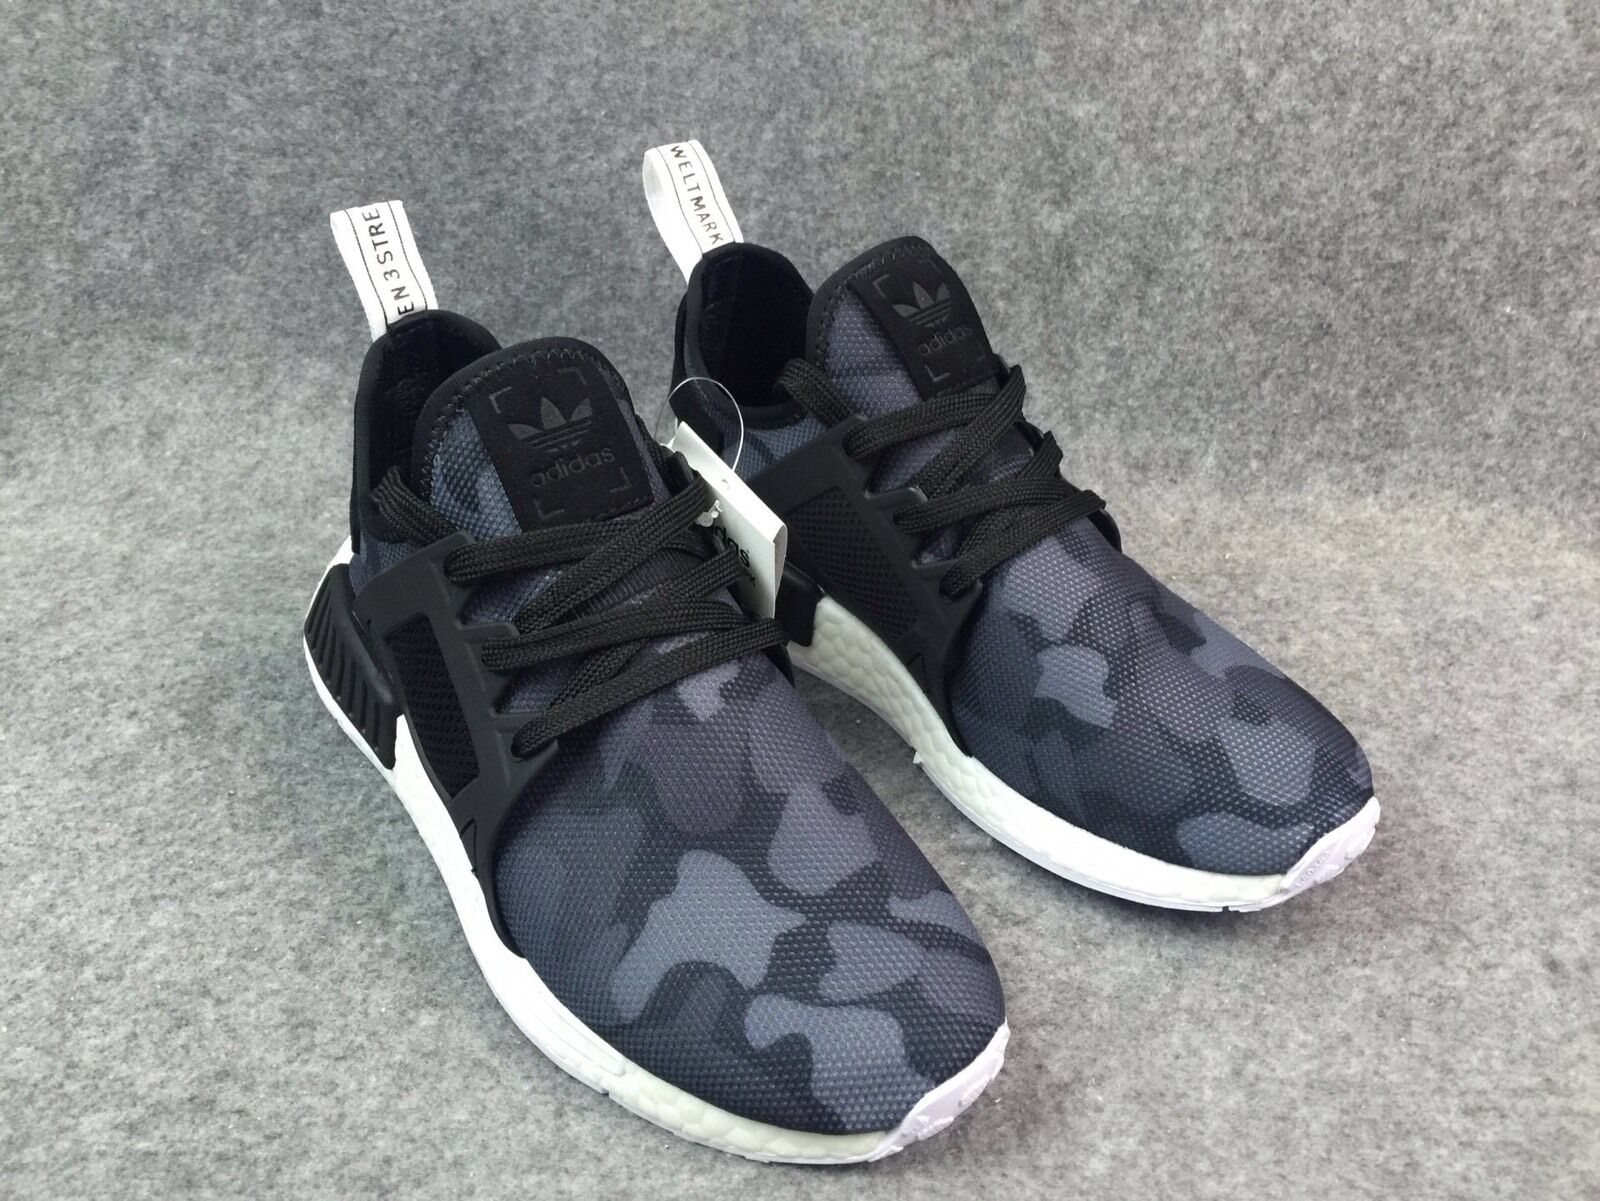 Adidas Nmd Xr1 Duck Camo Black Size 8 (BLACK VERSION ONLY)